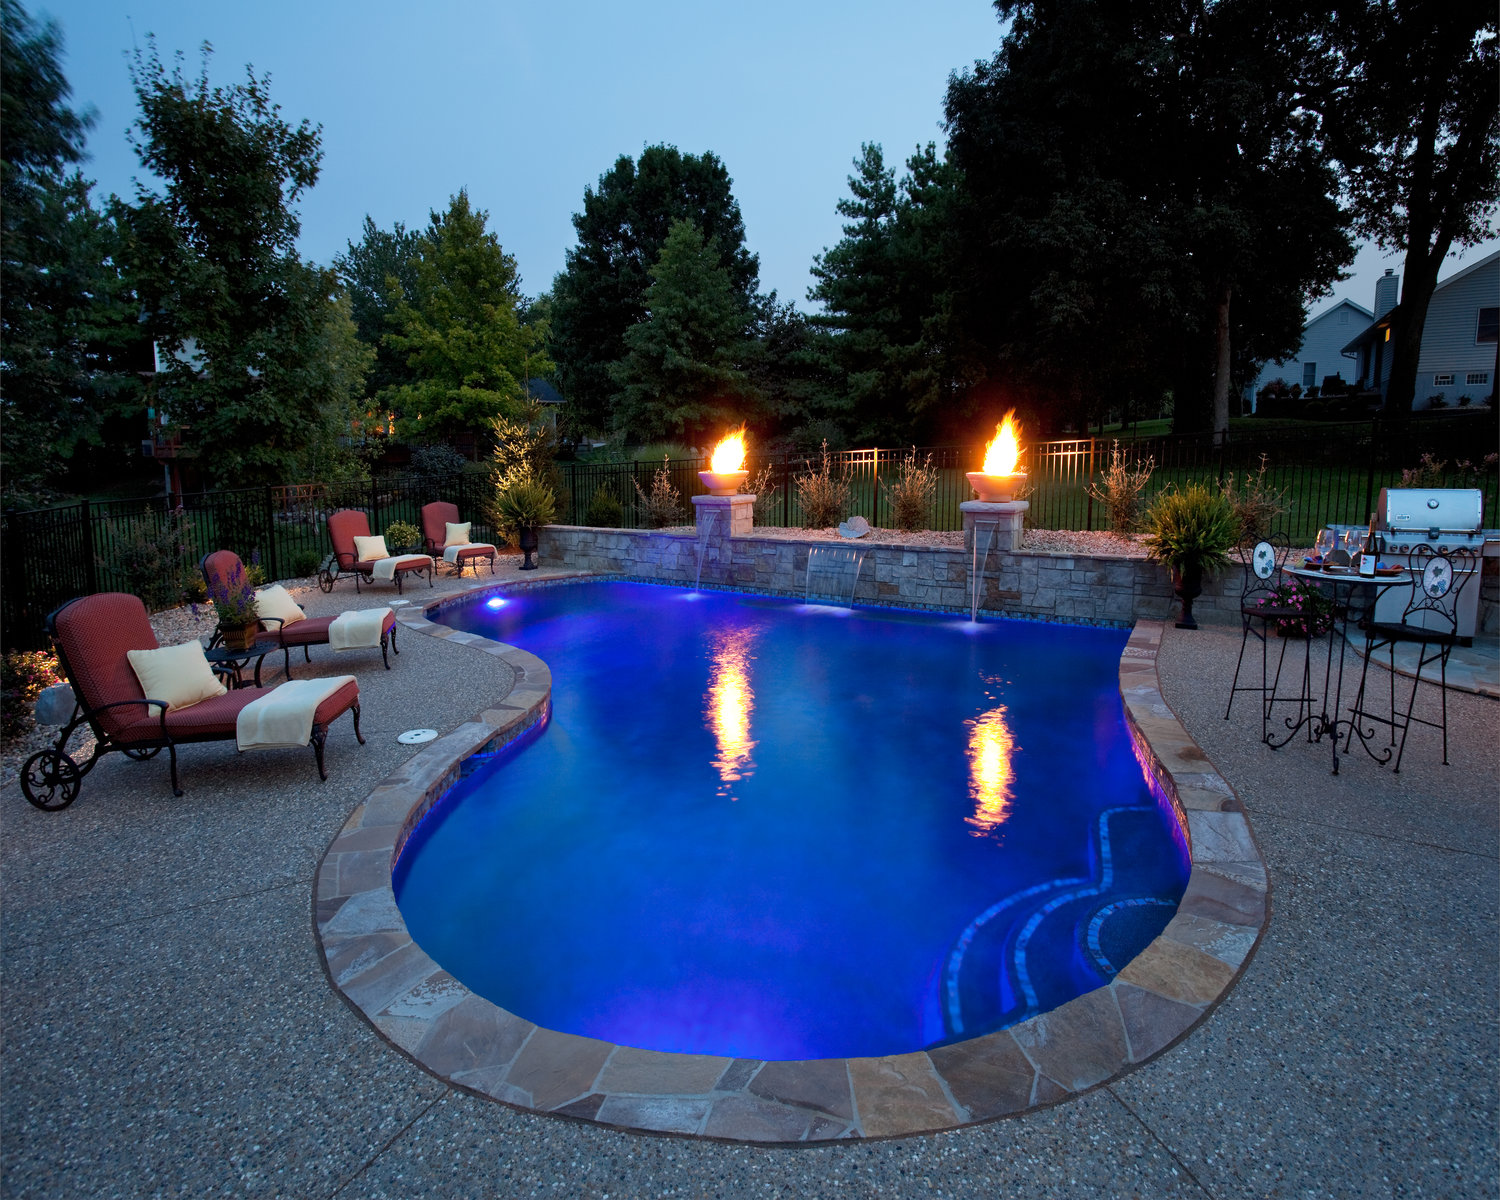 Having an in ground pool installed is an endeavor that you can easily navigate by following the suggestions we have laid out below.